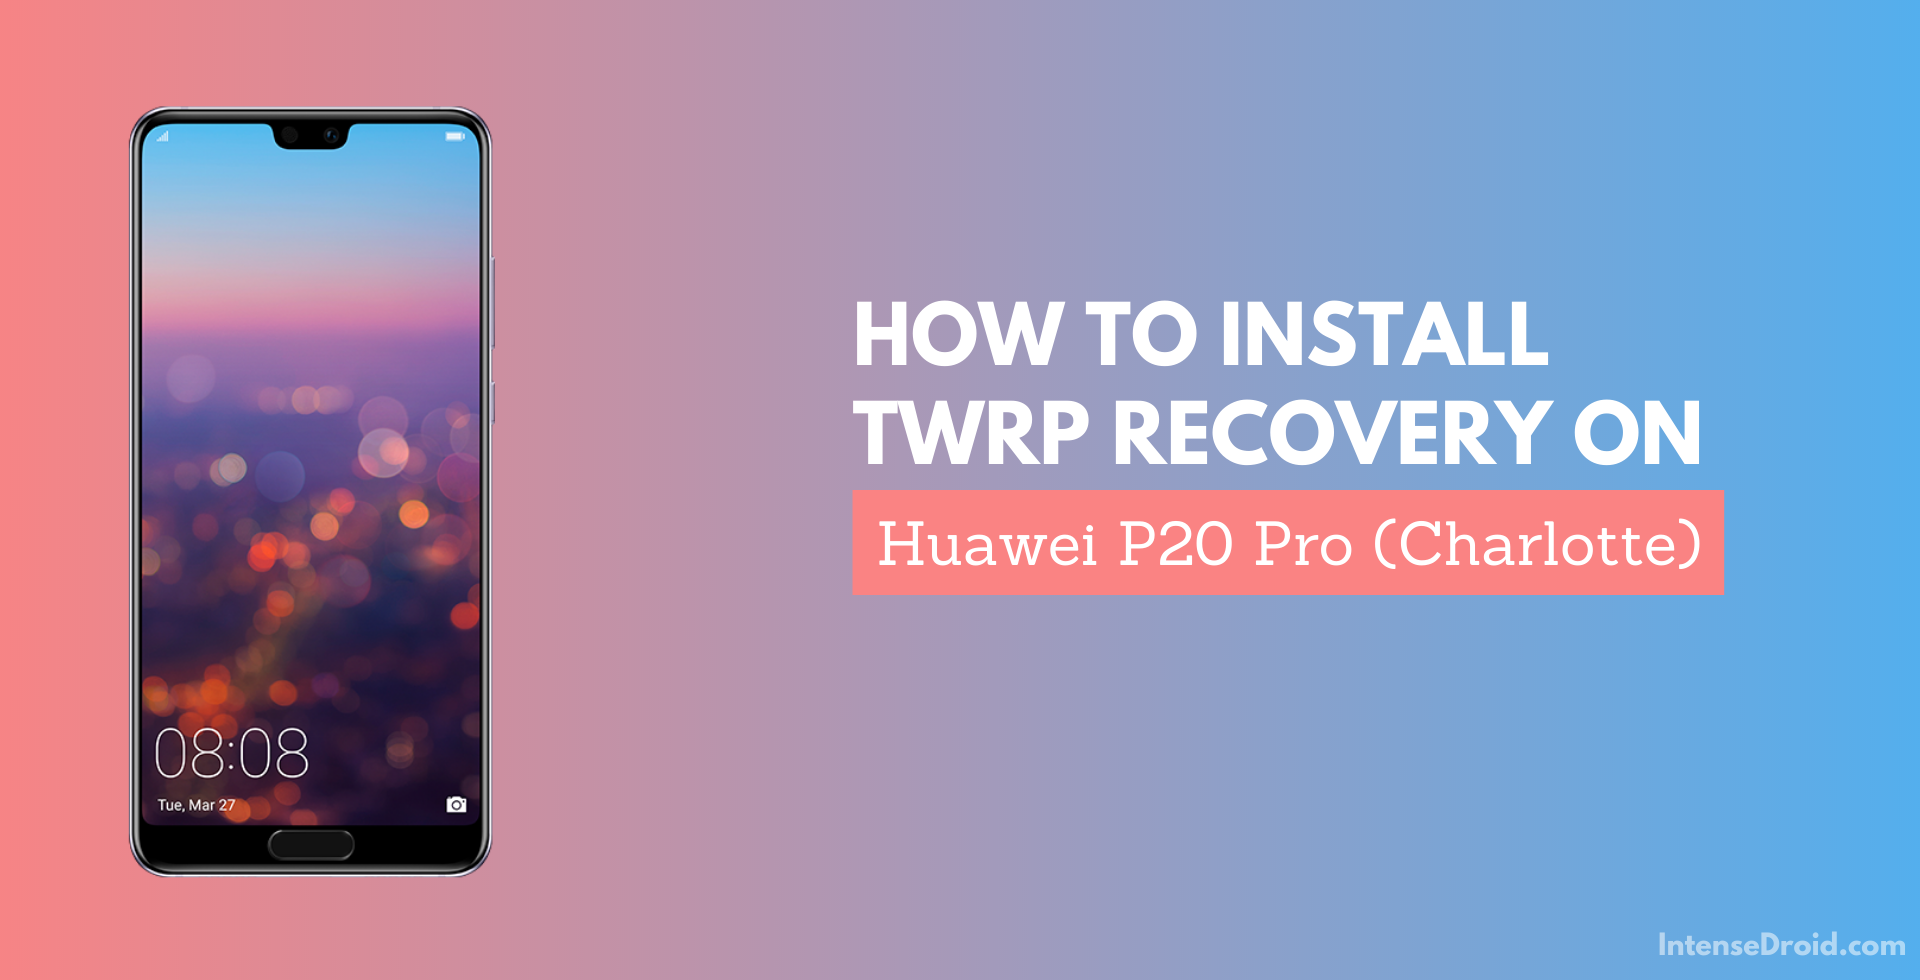 How To Install TWRP Recovery on Huawei P20 Pro (charlotte)